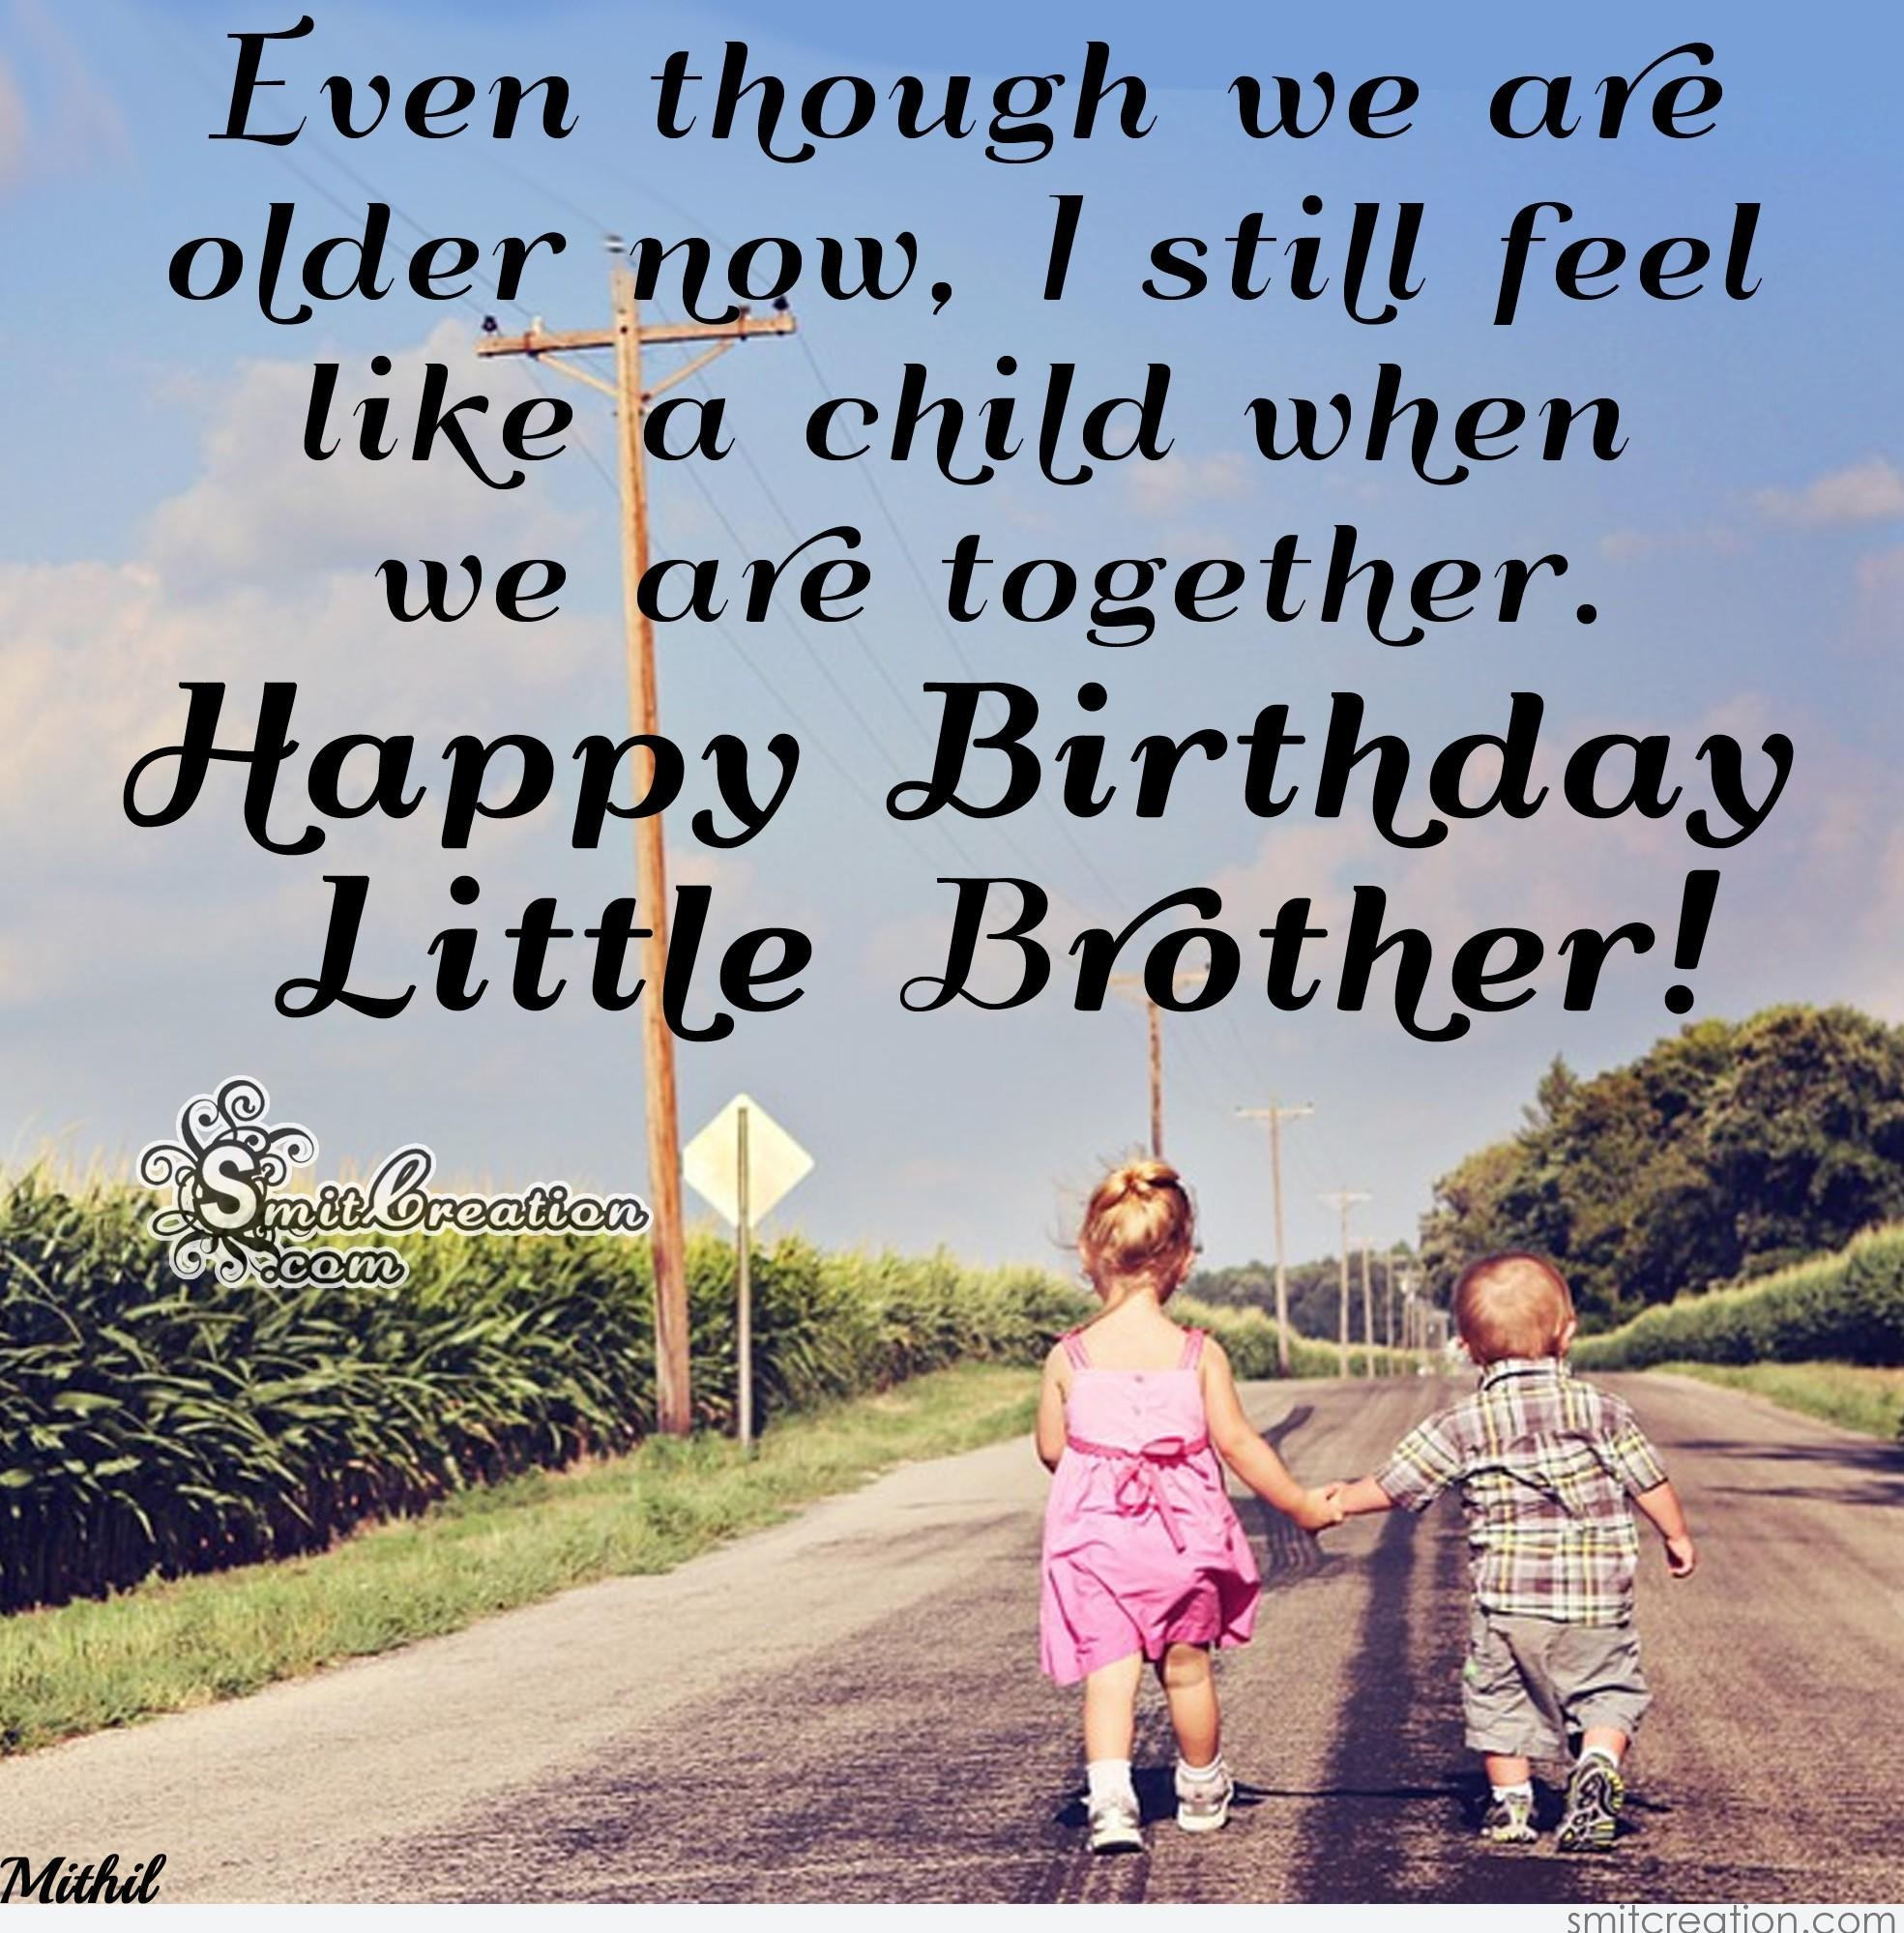 Birthday Quotes For Younger Brother From Sister: Birthday Wishes For Brother Pictures And Graphics